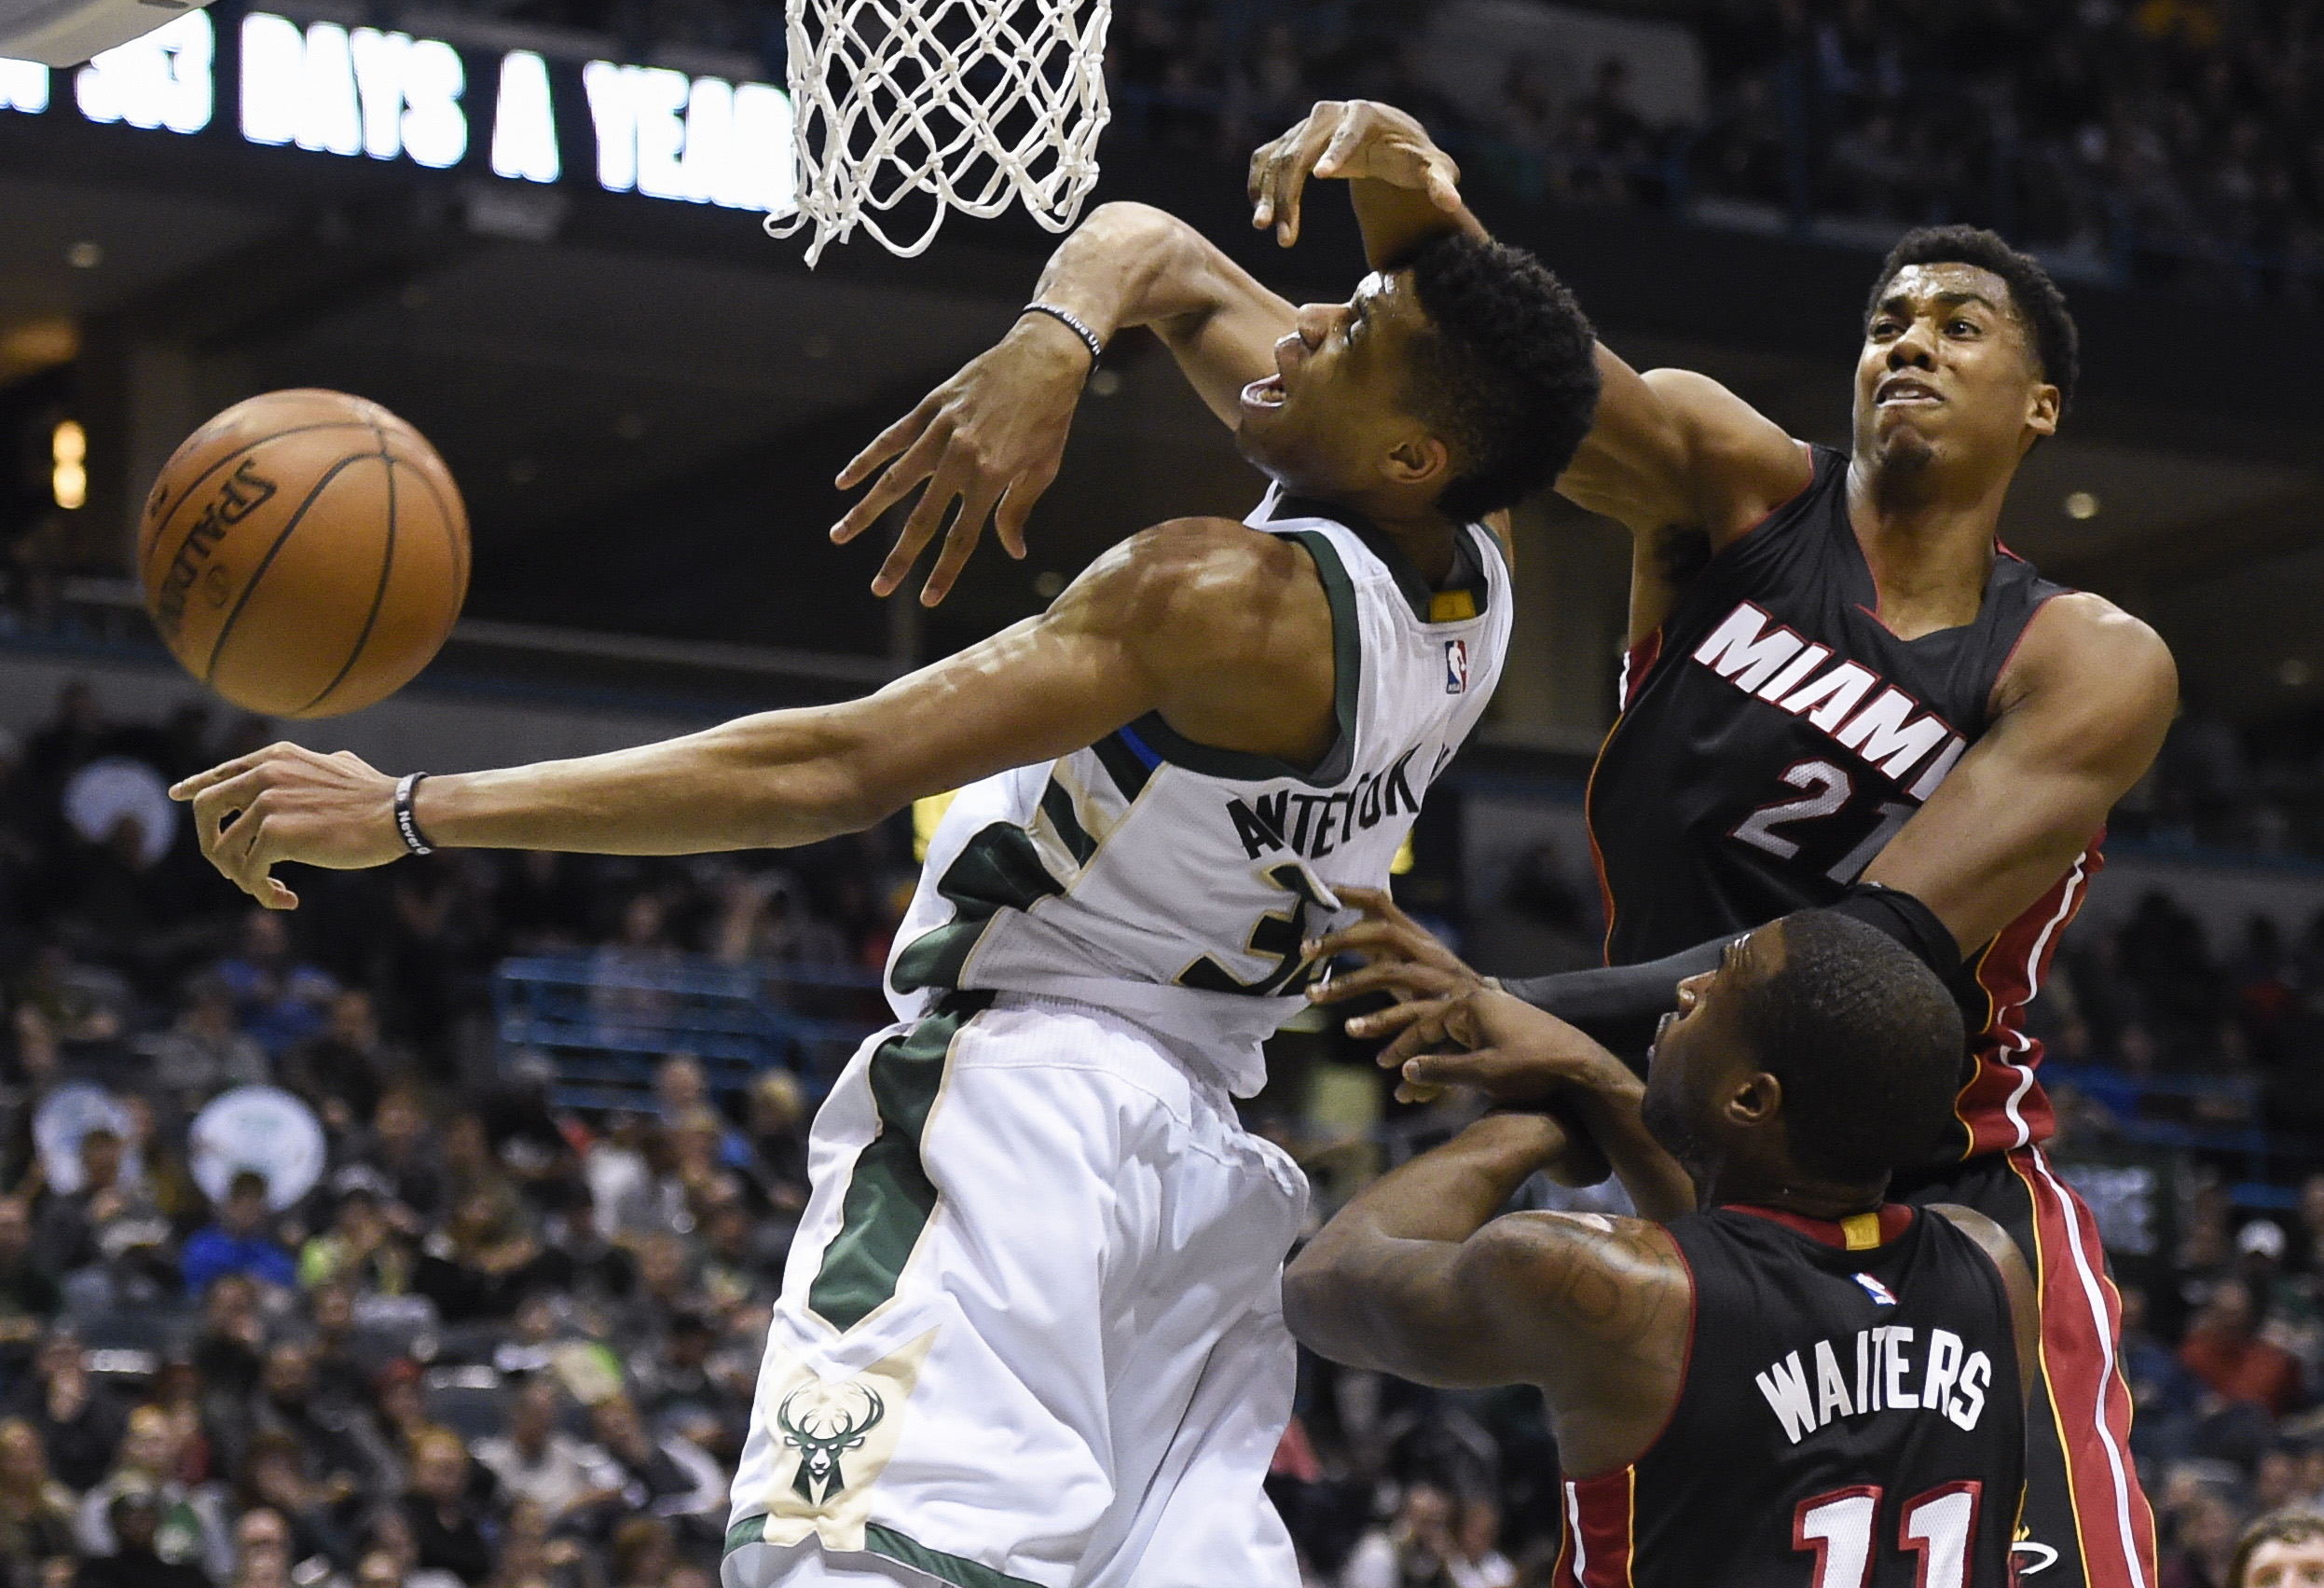 Jan 13, 2017; Milwaukee, WI, USA; Milwaukee Bucks forward Giannis Antetokounmpo (34) battles for a rebound against Miami Heat guard Wayne Ellington (2) and guard Dion Waiters (11) in the fourth quarter at BMO Harris Bradley Center. Mandatory Credit: Benny Sieu-USA TODAY Sports